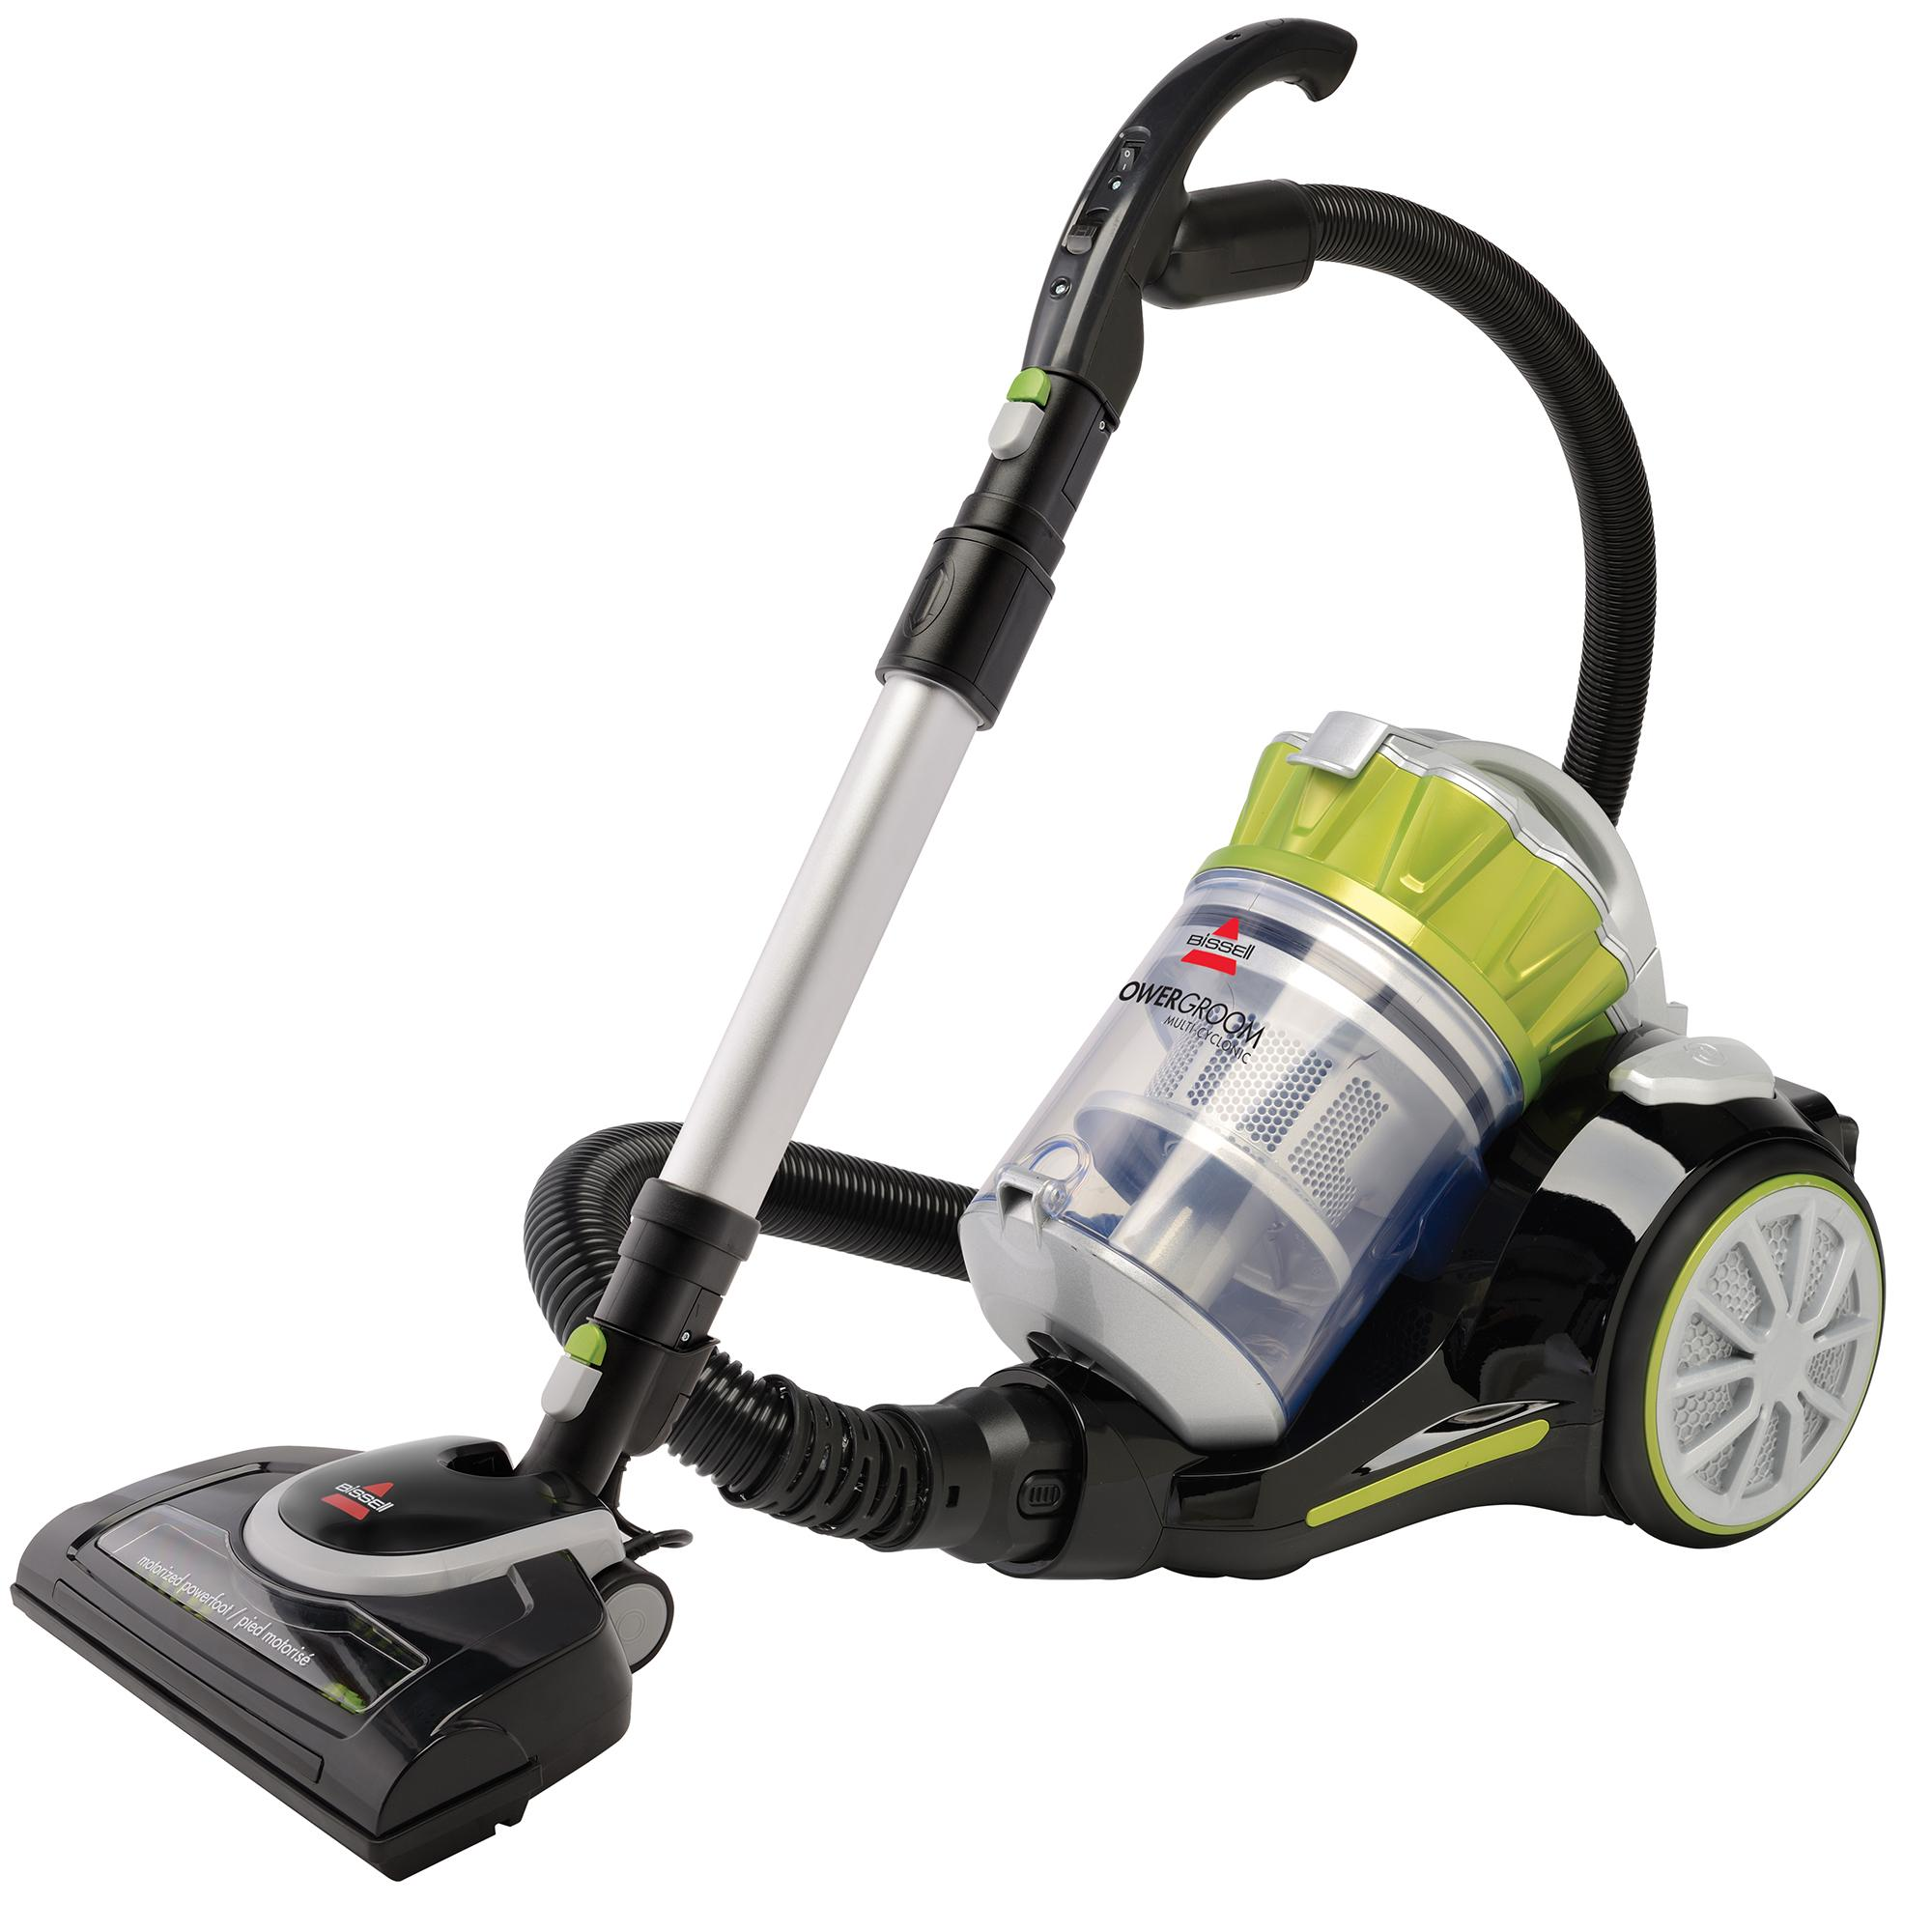 Kitchen Vacuum: Bissell Powergroom Multicyclonic Bagless Canister Vacuum